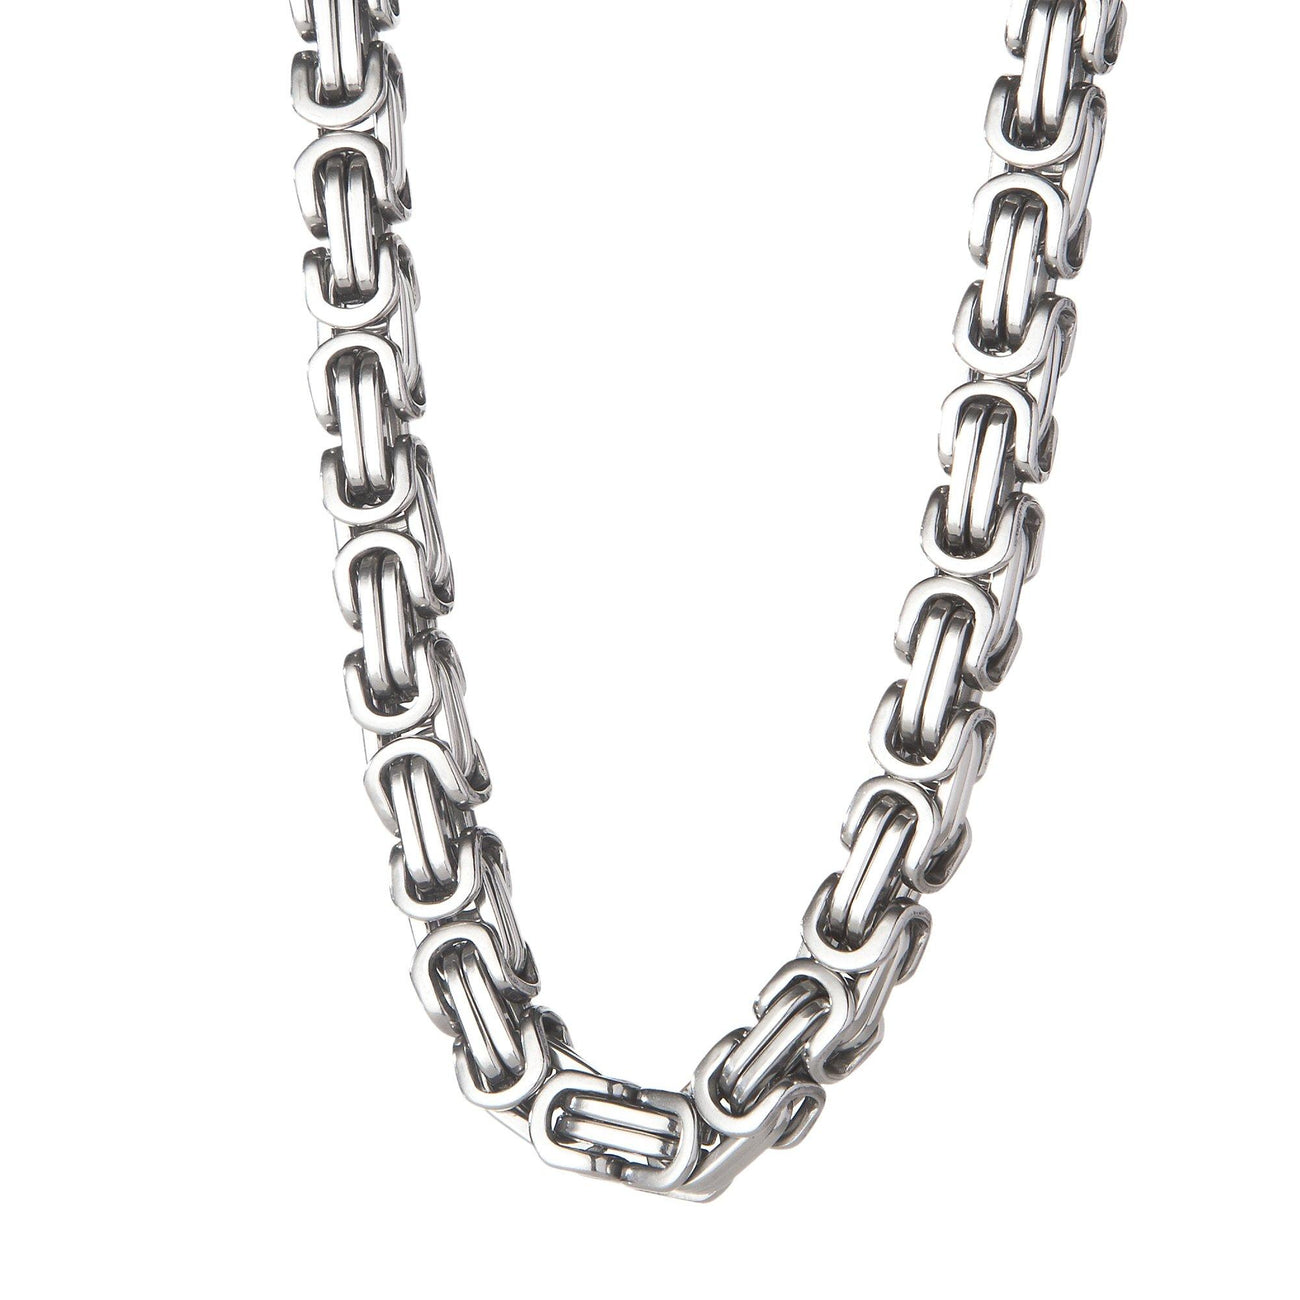 Chains - 8mm Large Stainless Steel Byzantine Box Chain